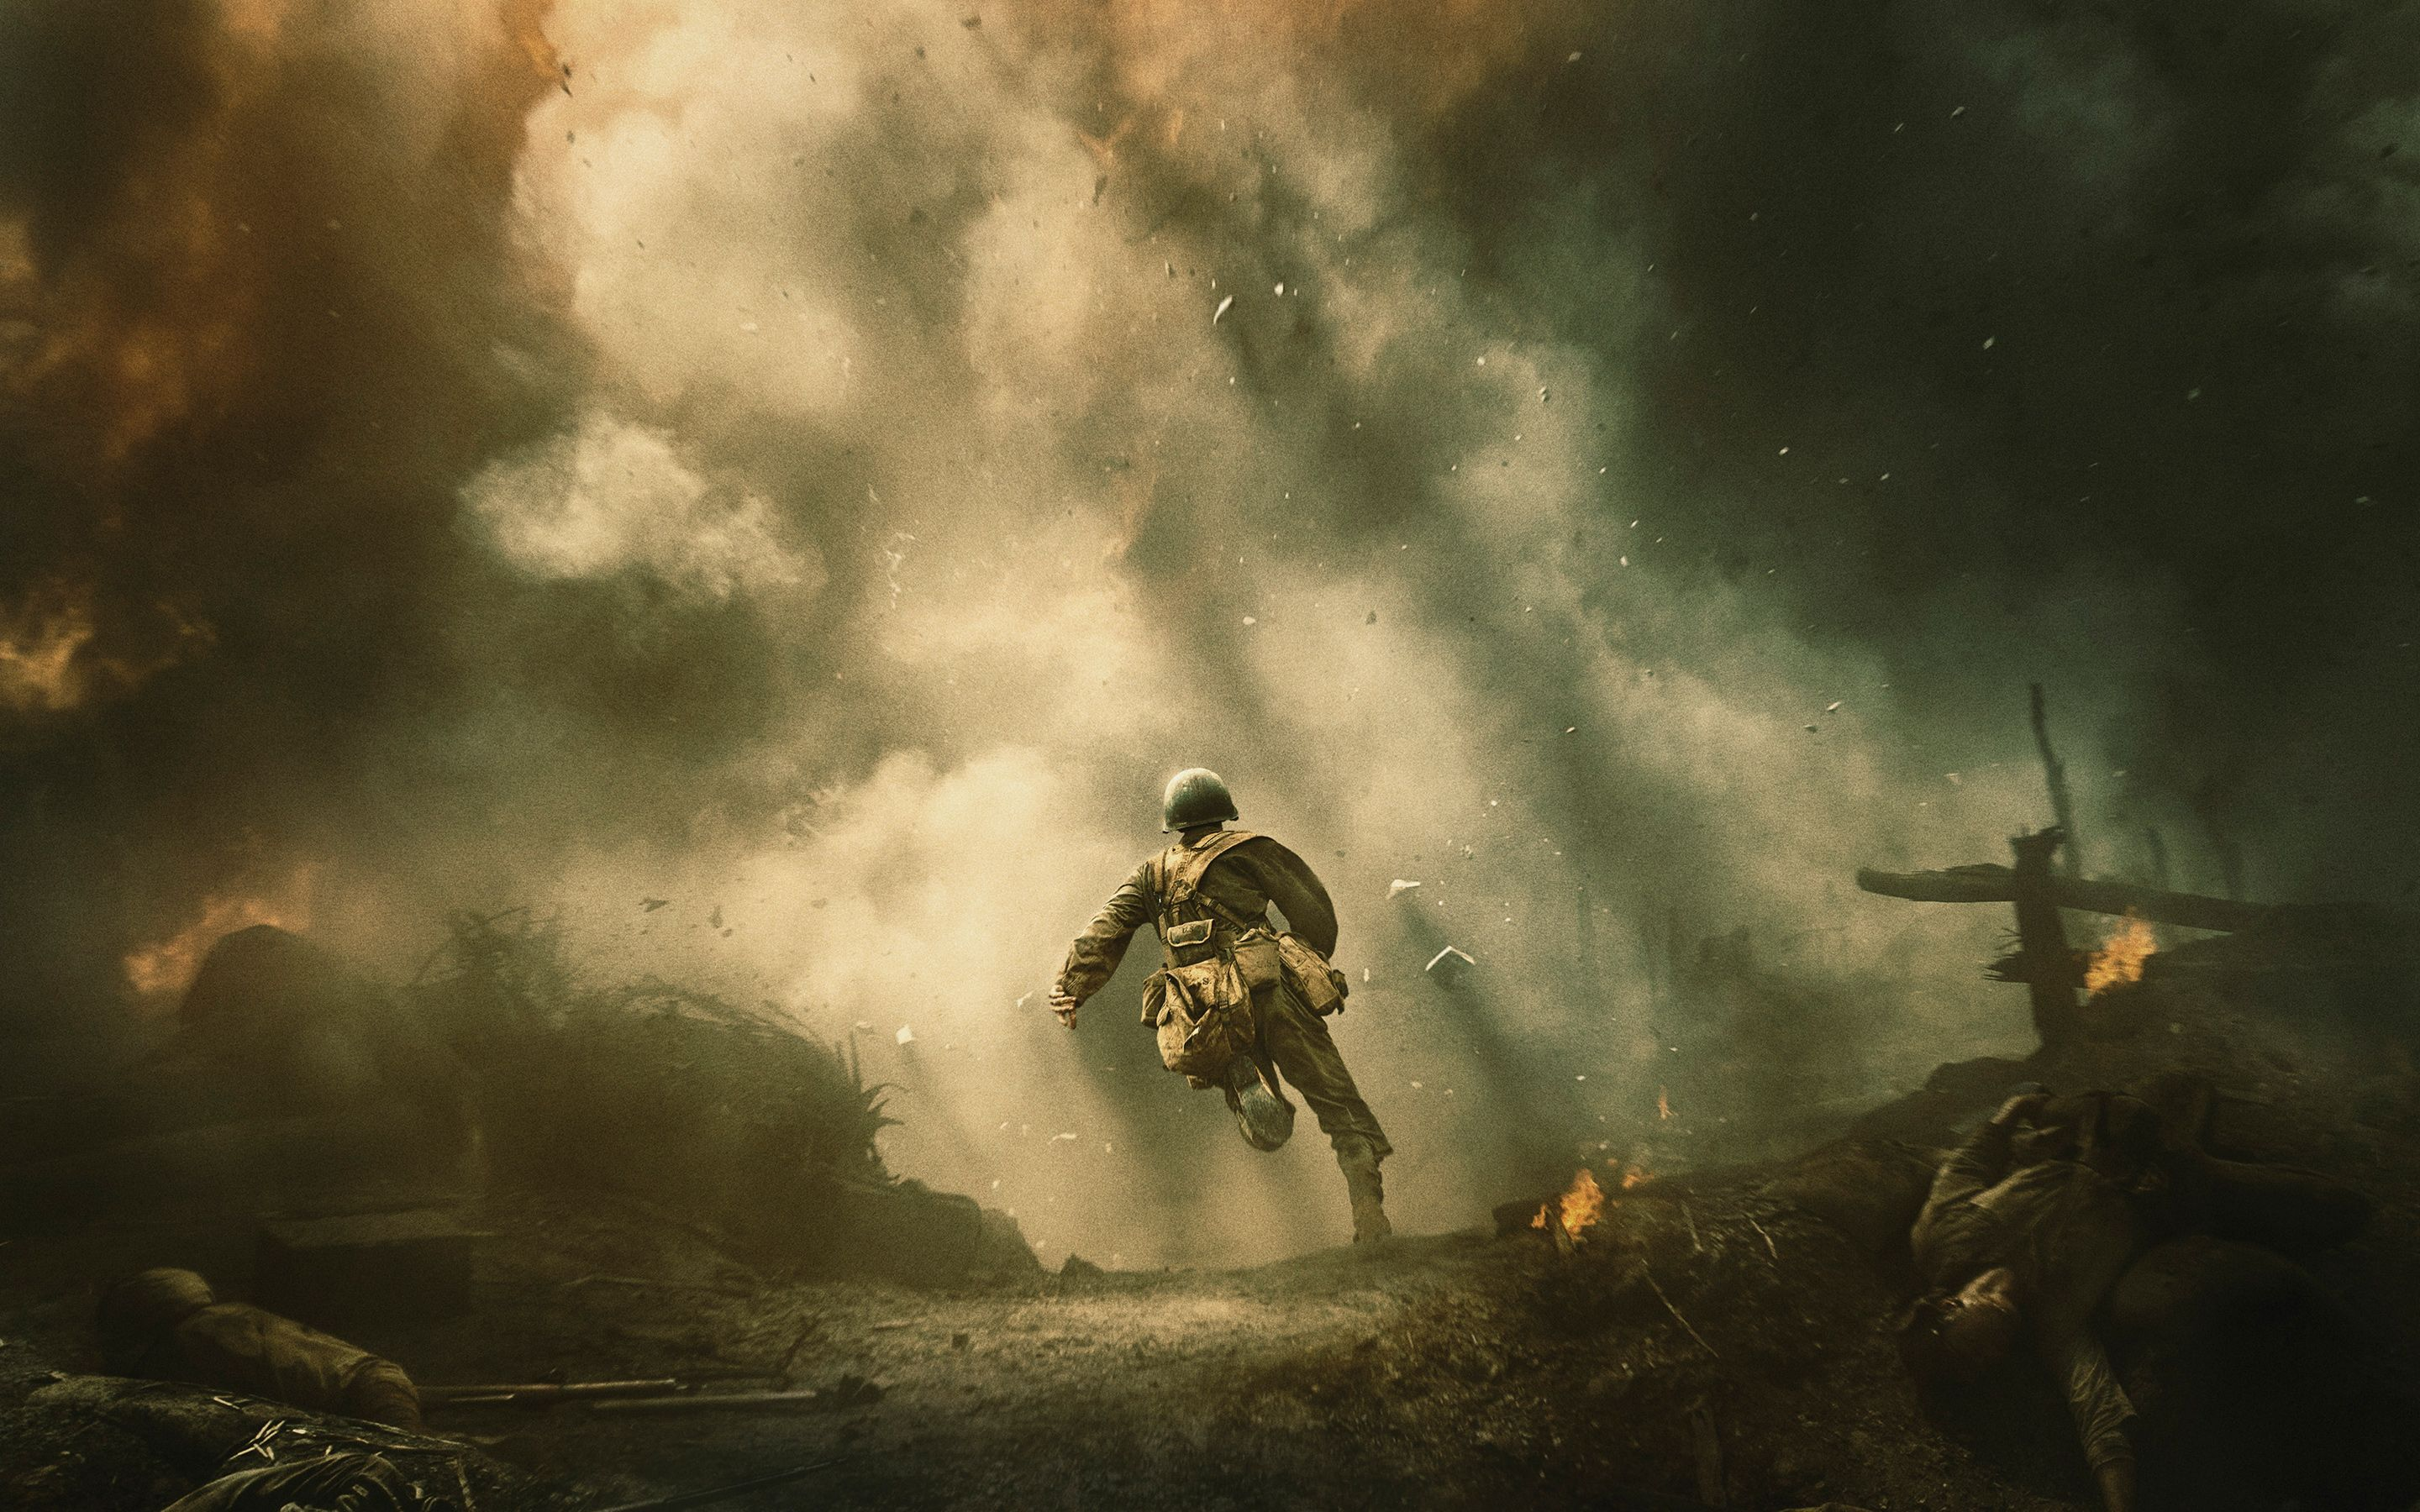 Pin By Hd Wallpapers On Movie Hd Wallpapers Pinterest